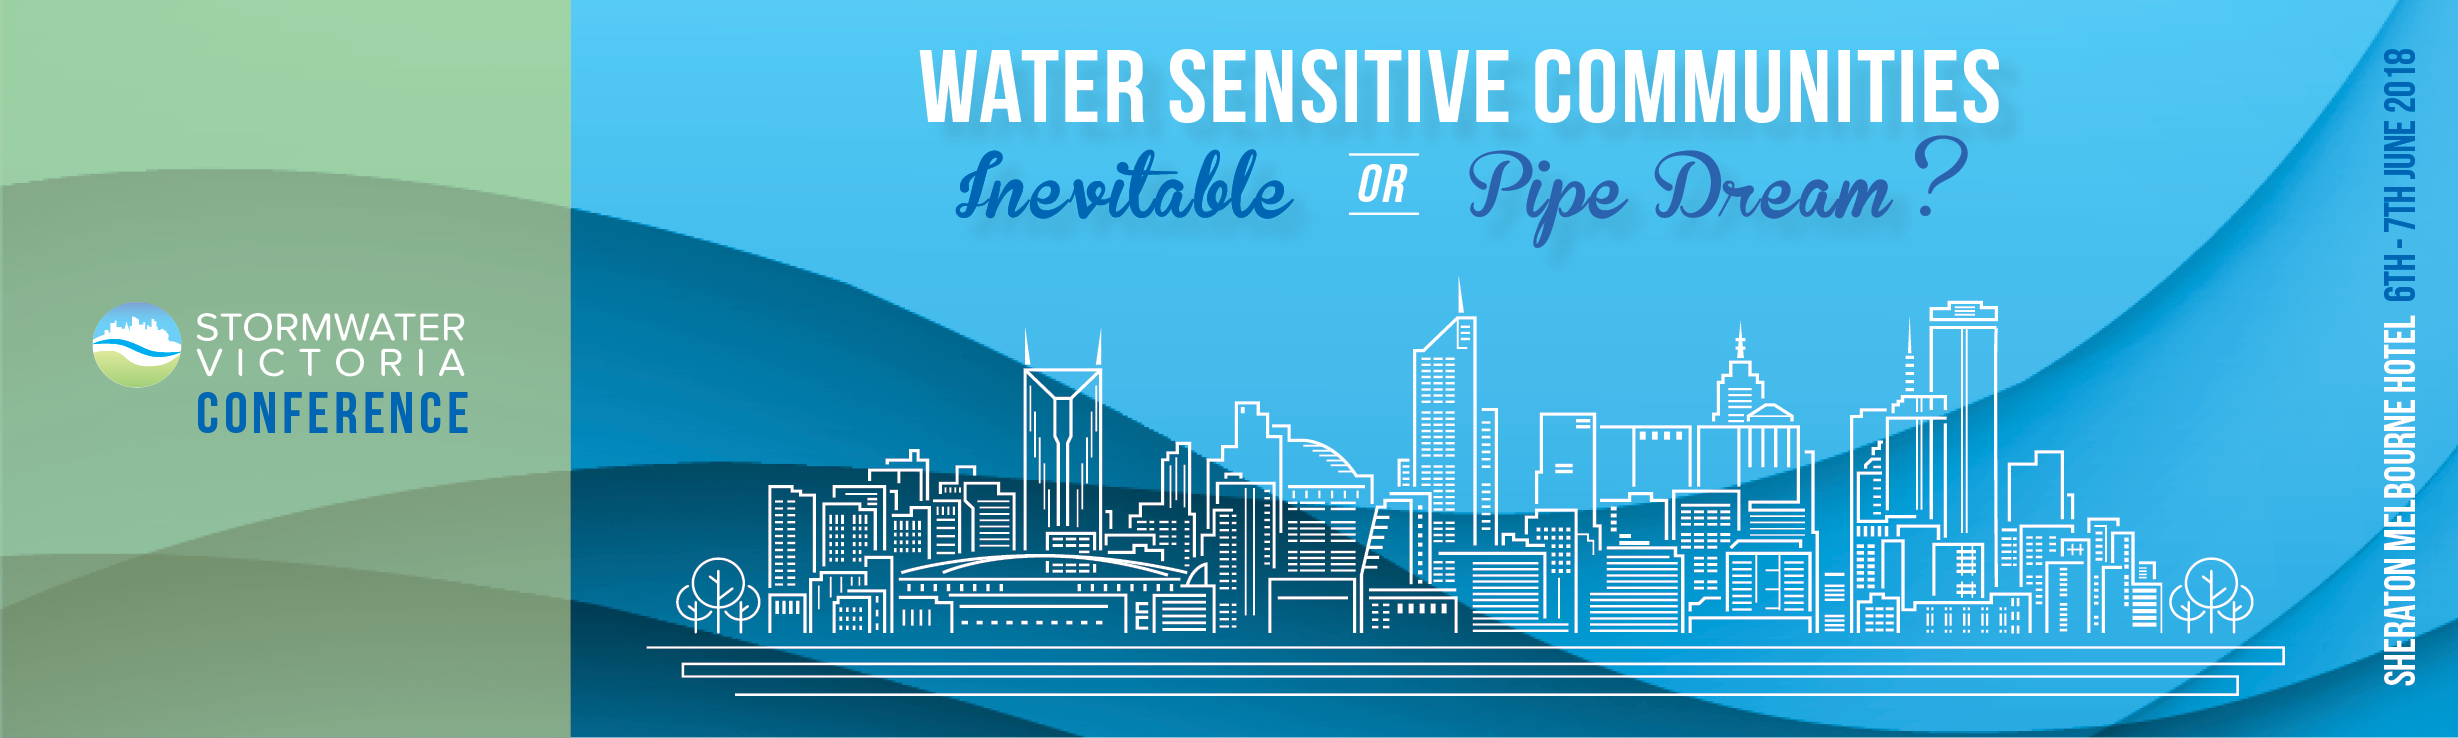 2018 Stormwater Victoria Conference Web Banner v4 590x177